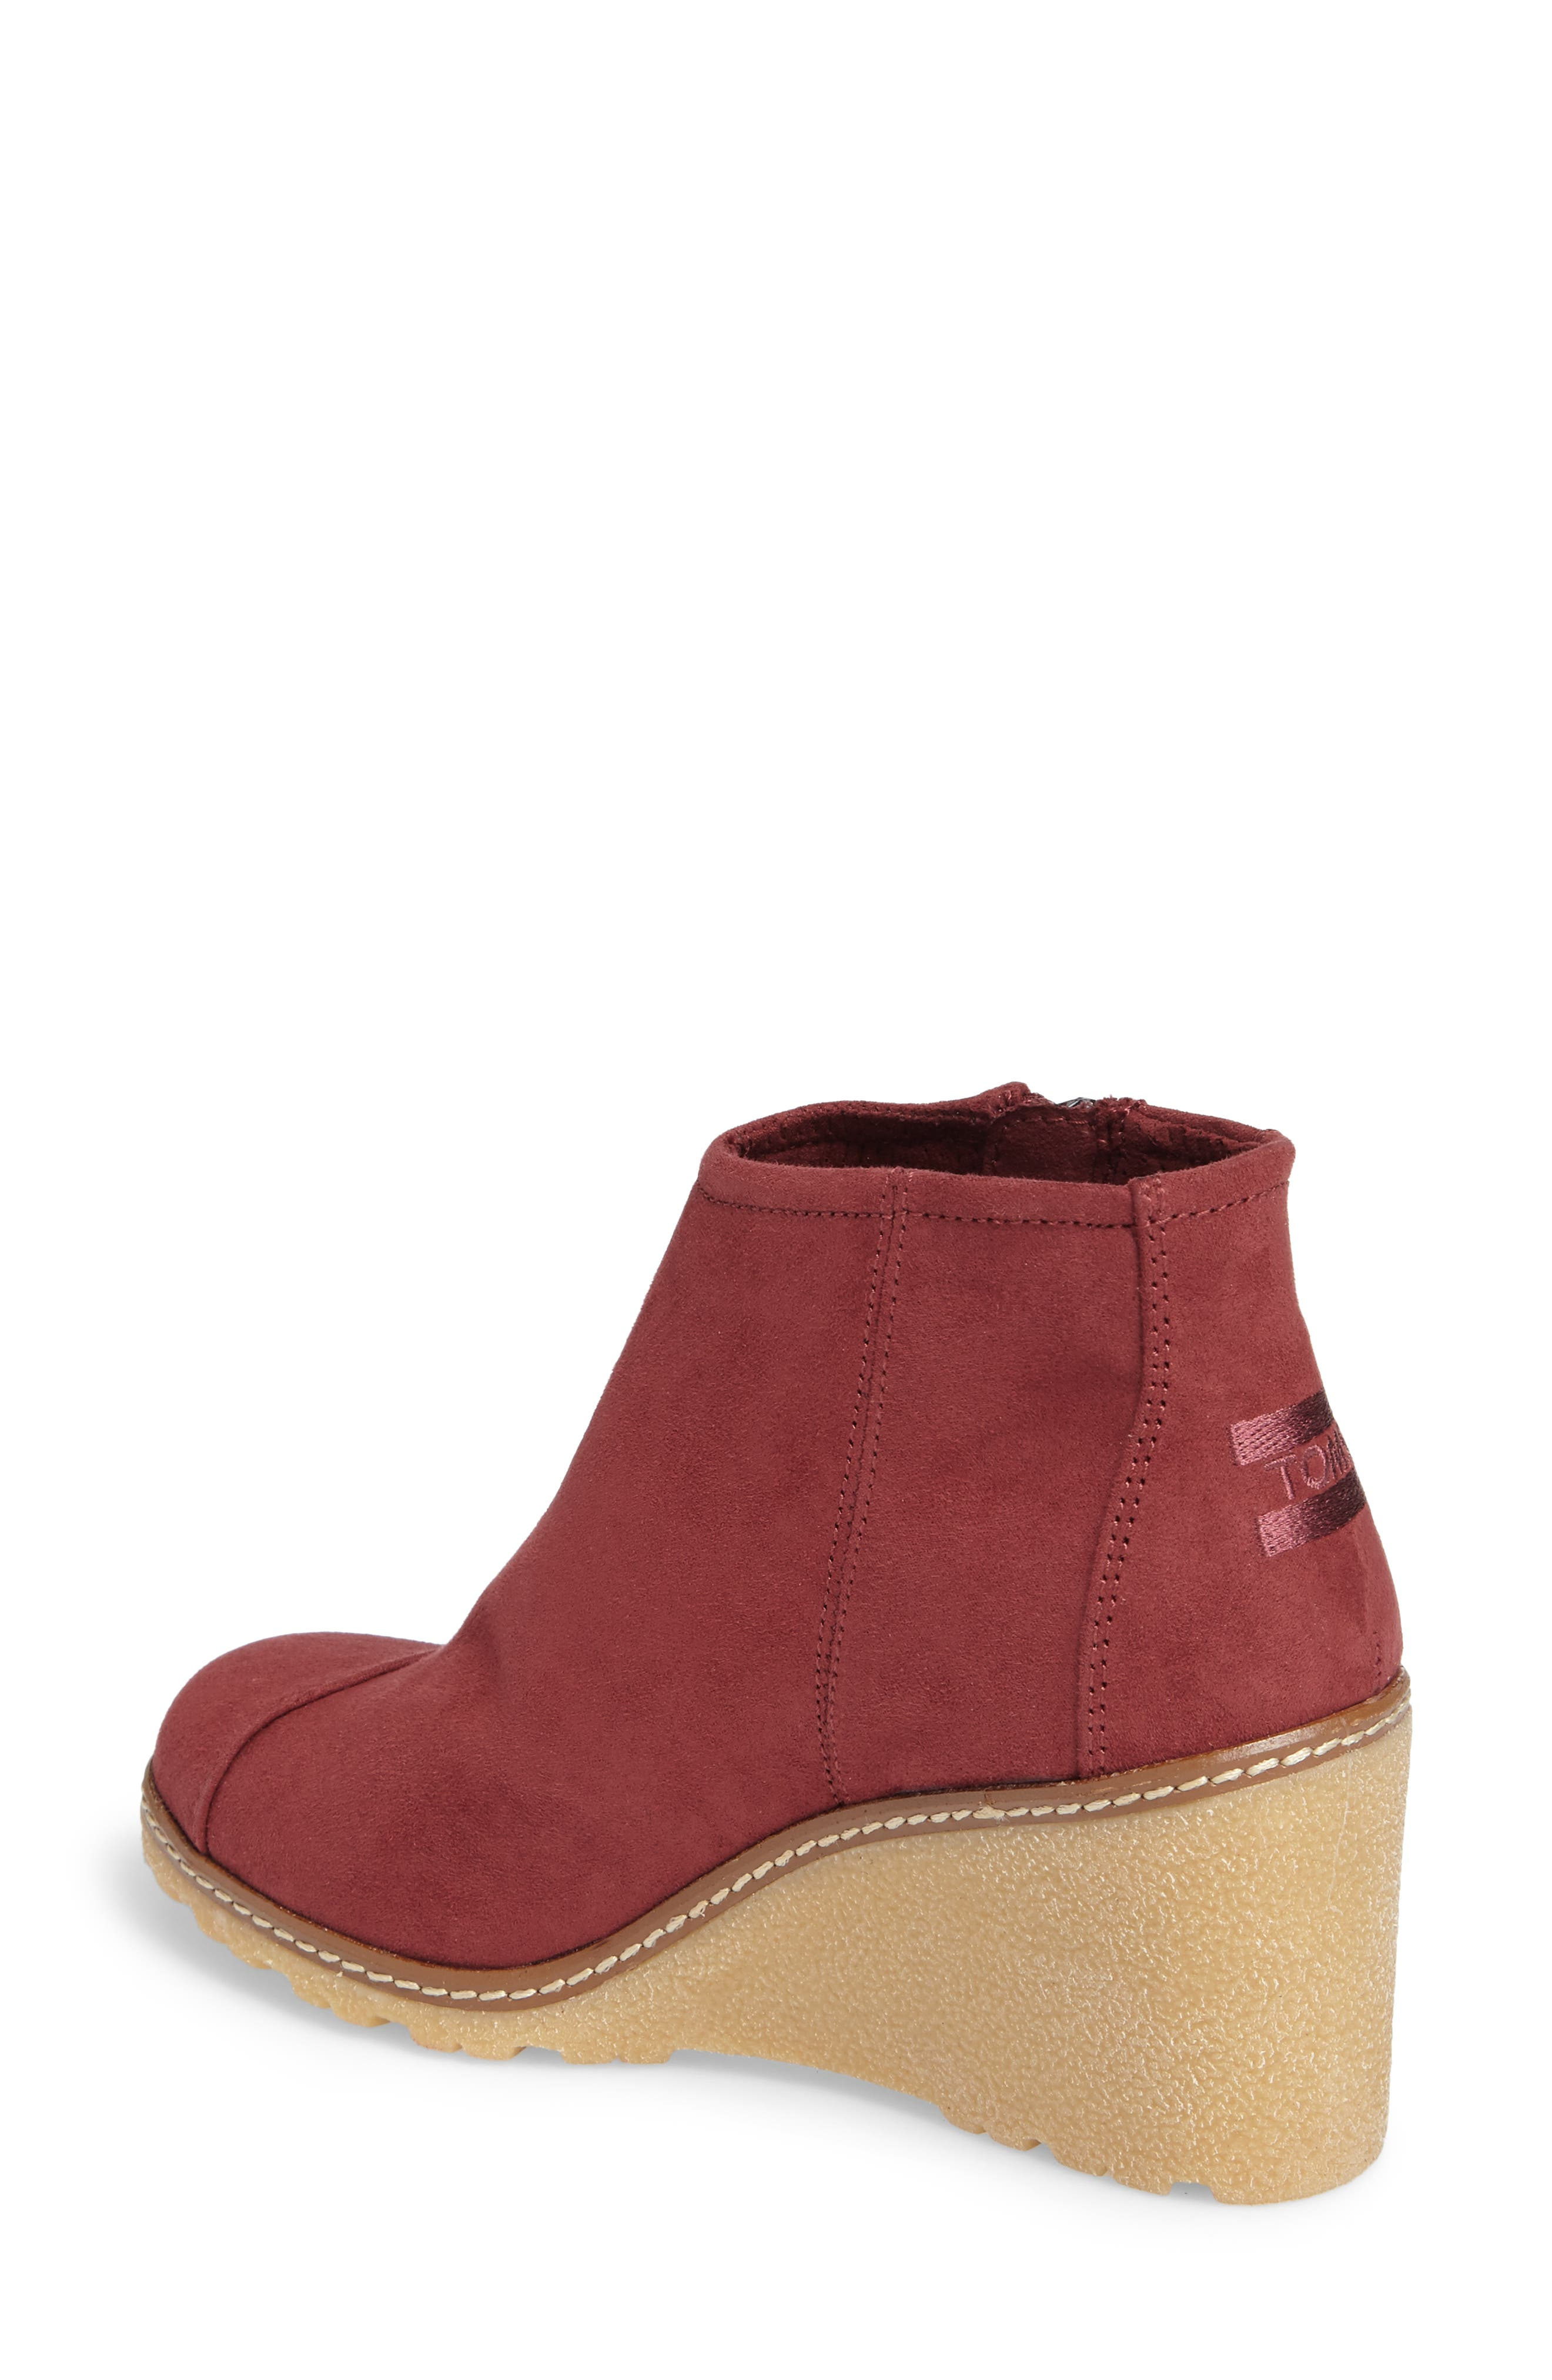 Avery Wedge Bootie,                             Alternate thumbnail 8, color,